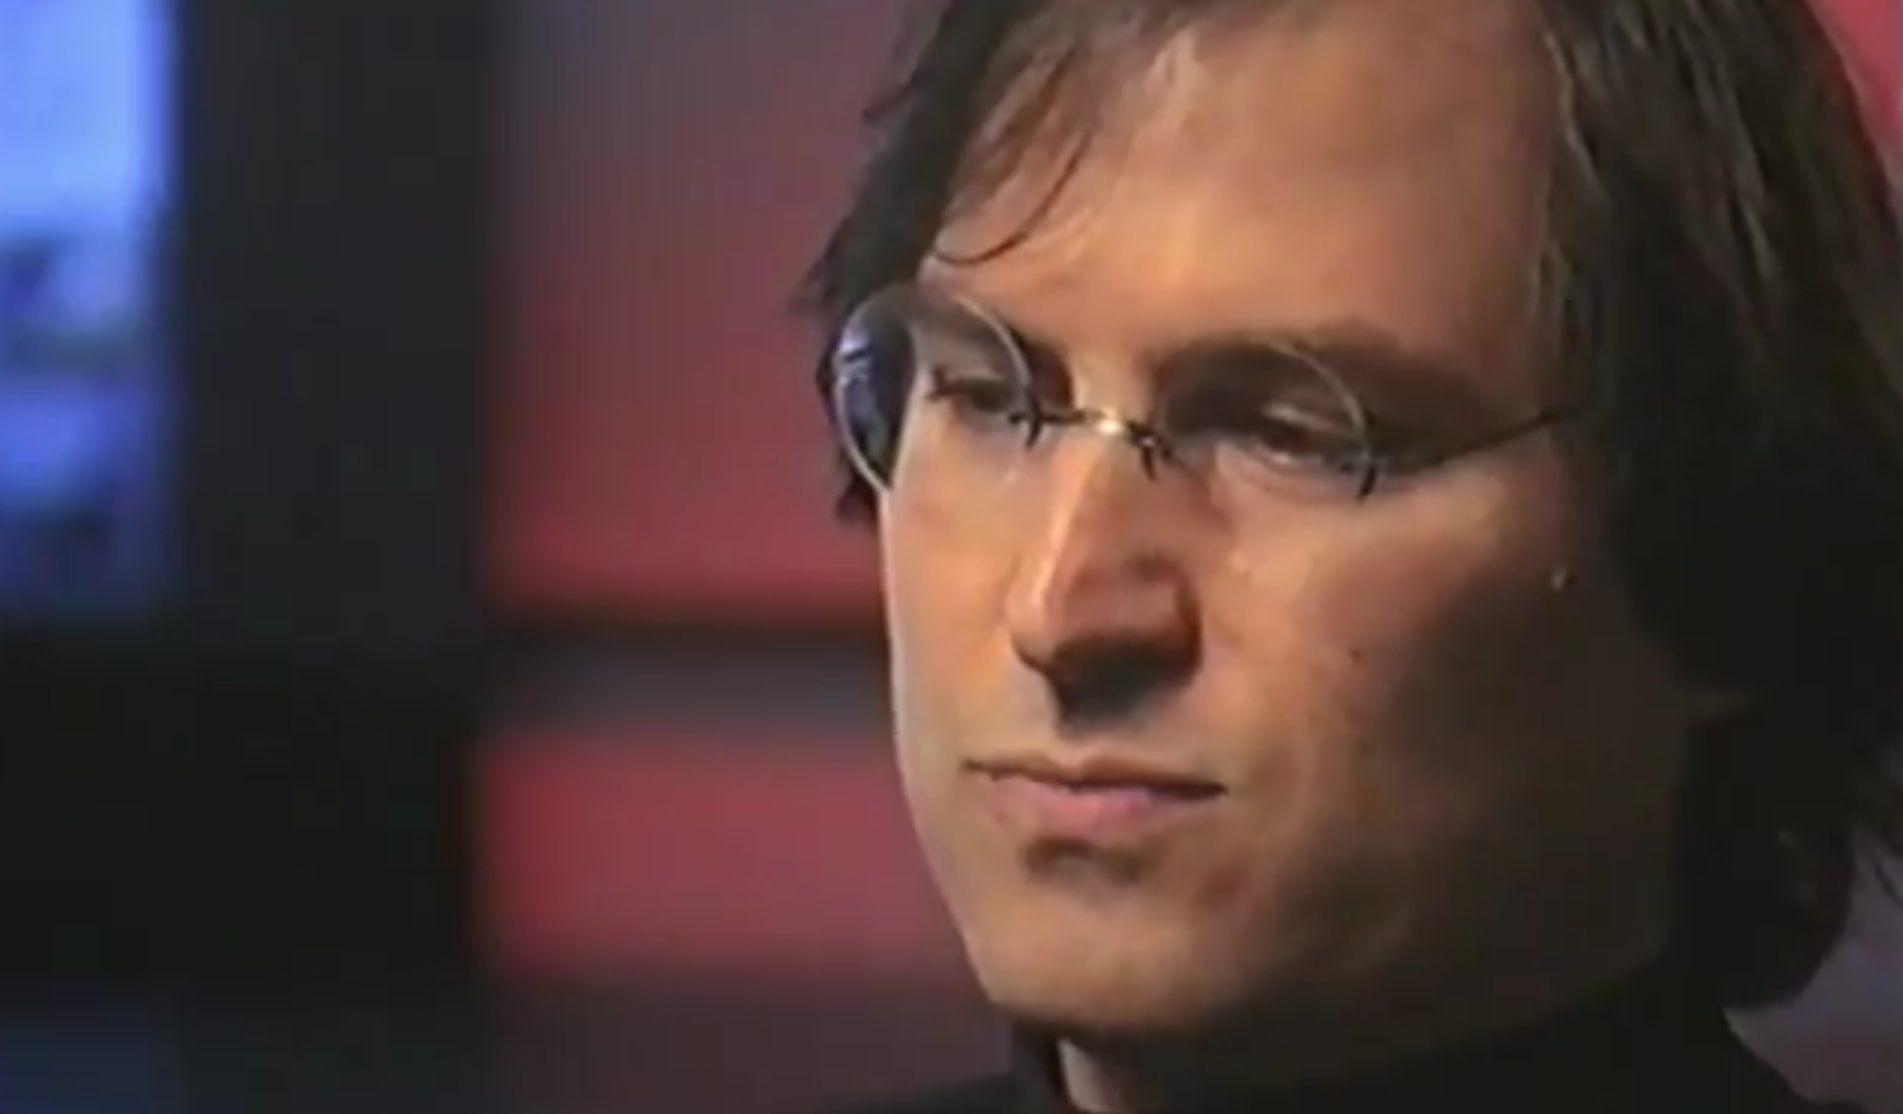 Watch a sample of the lost Steve Jobs interview coming to theaters